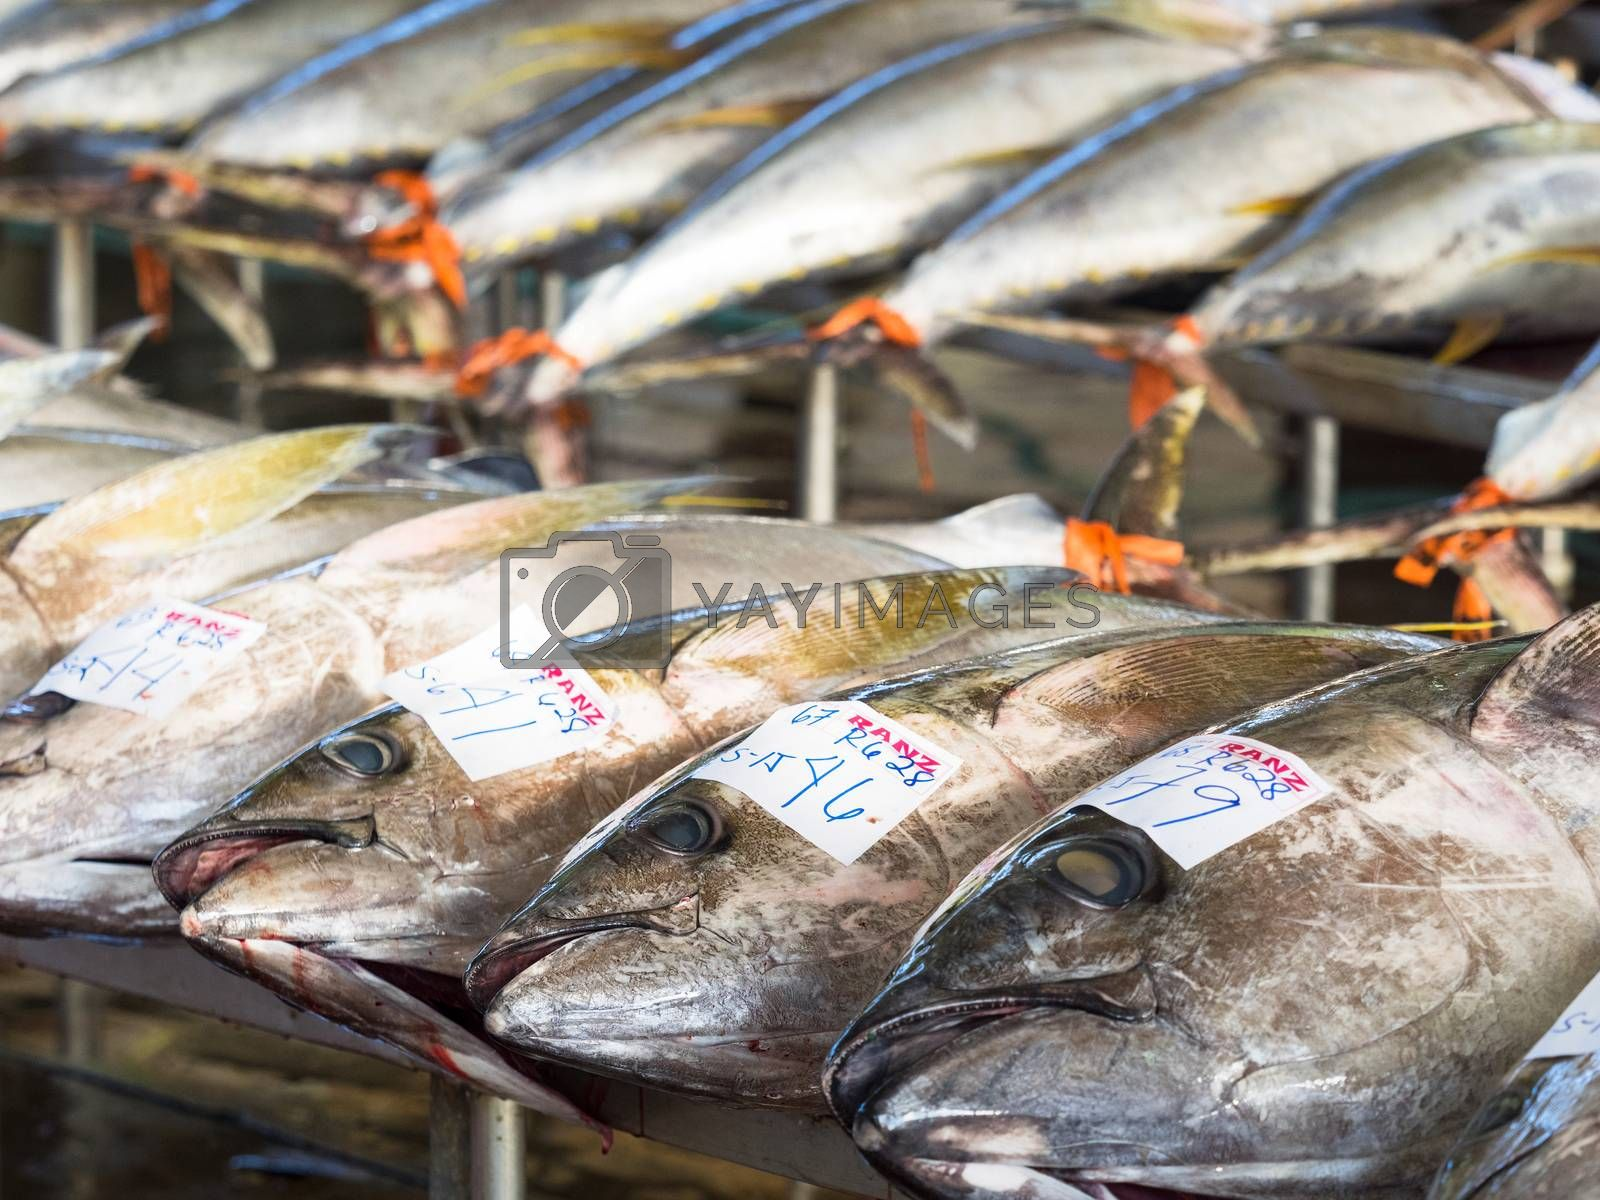 General Santos City - September 1, 2016: Yellowfin tuna lined up for sale at the Tuna Harbor in General Santos City, South Cotabato, The Philippines. General Santos is the Tuna Capital of The Philippines, and the tuna industry is an important contributor the the city's economy with export worldwide.